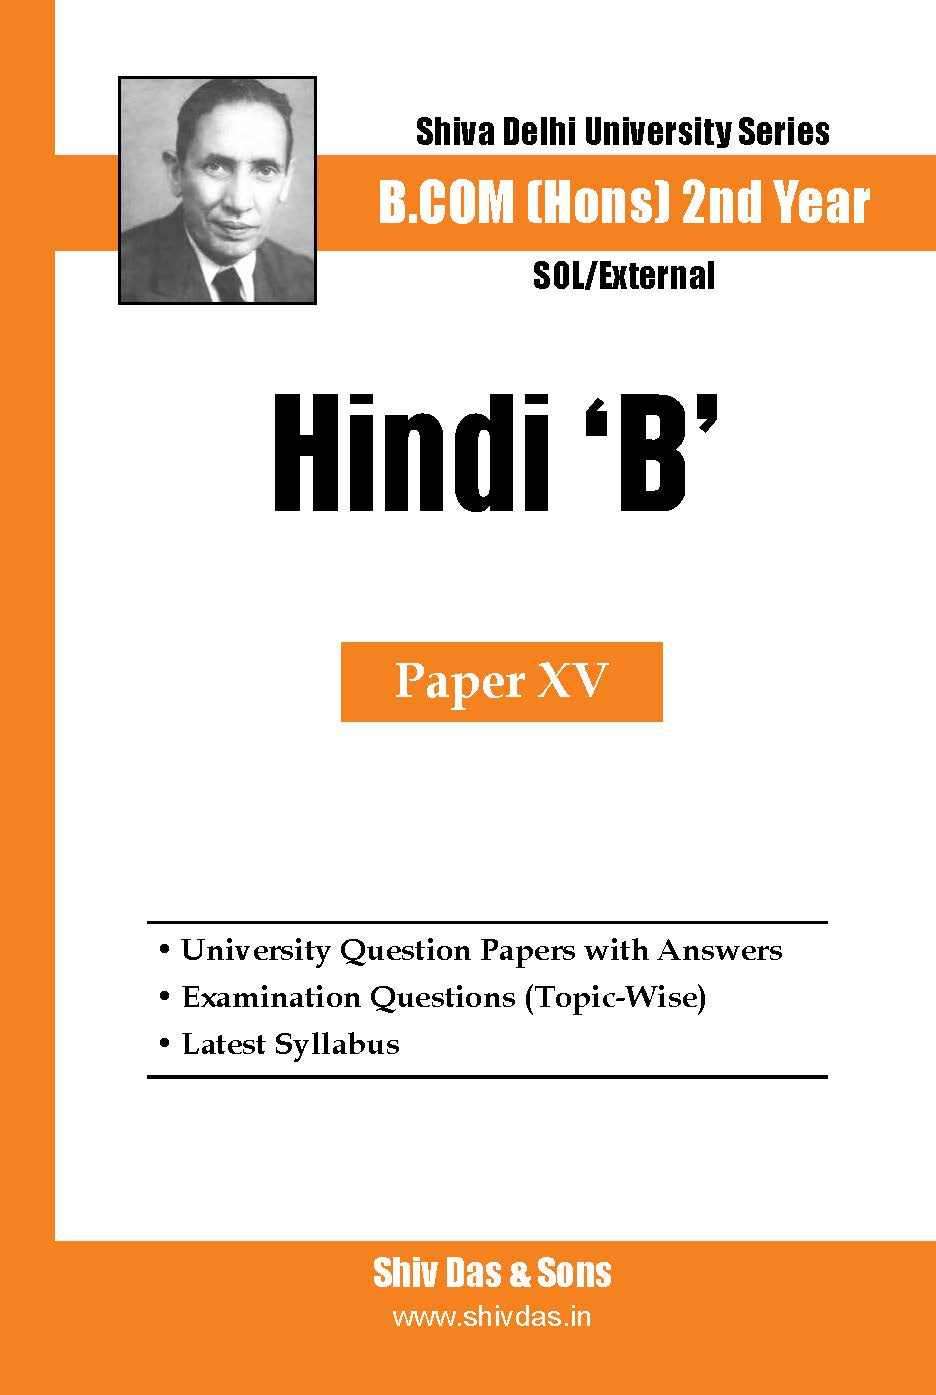 Hindi-B for B.Com Hons SOL/External 2nd Year